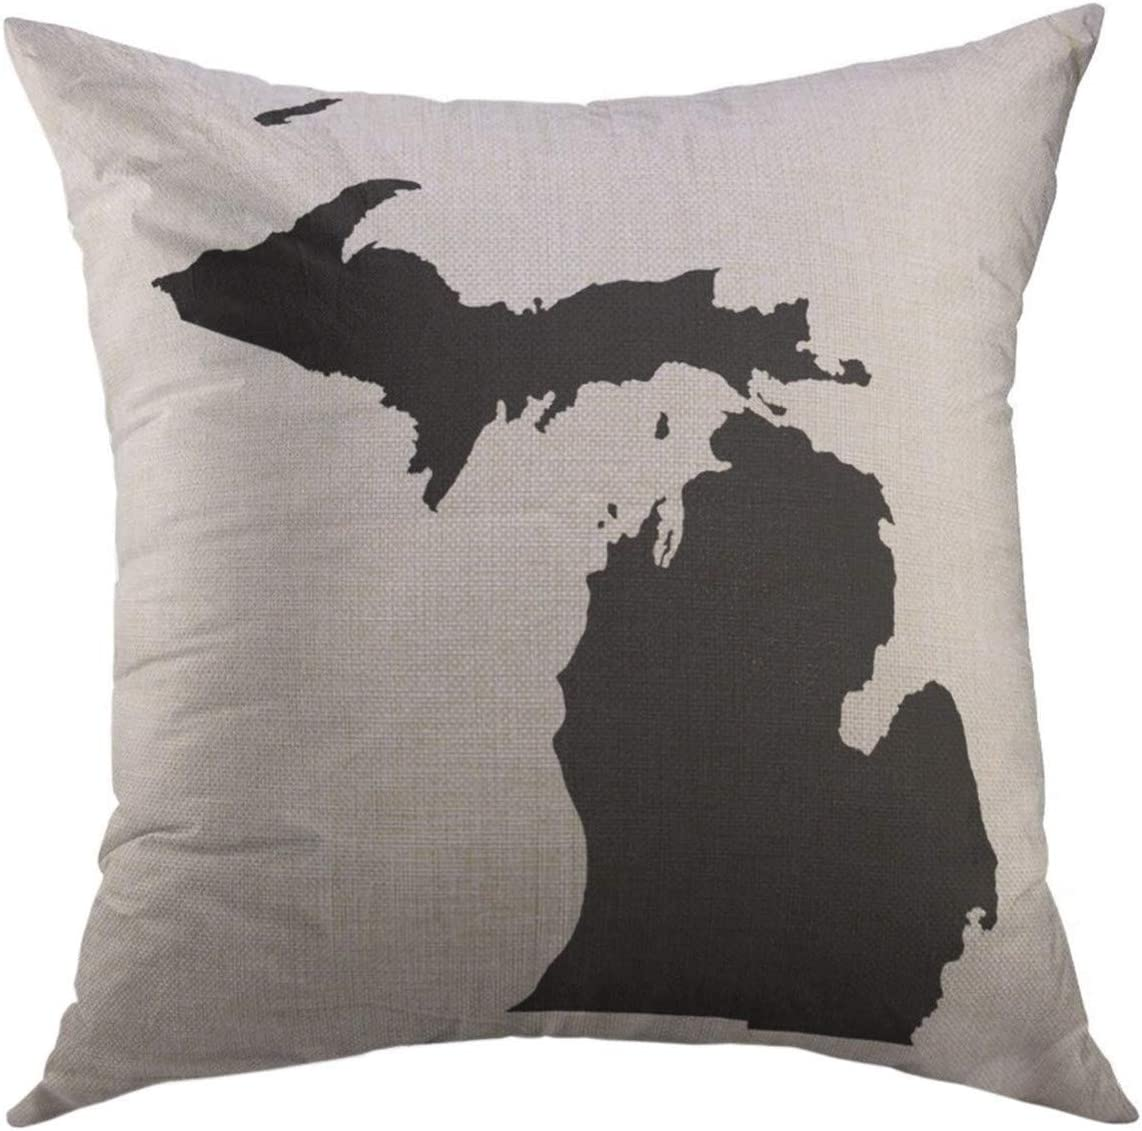 Amazon Com Mugod Throw Pillow Cover State Michigan In Black Shape Home Decor Pillow Case 18x18 Inch Home Kitchen